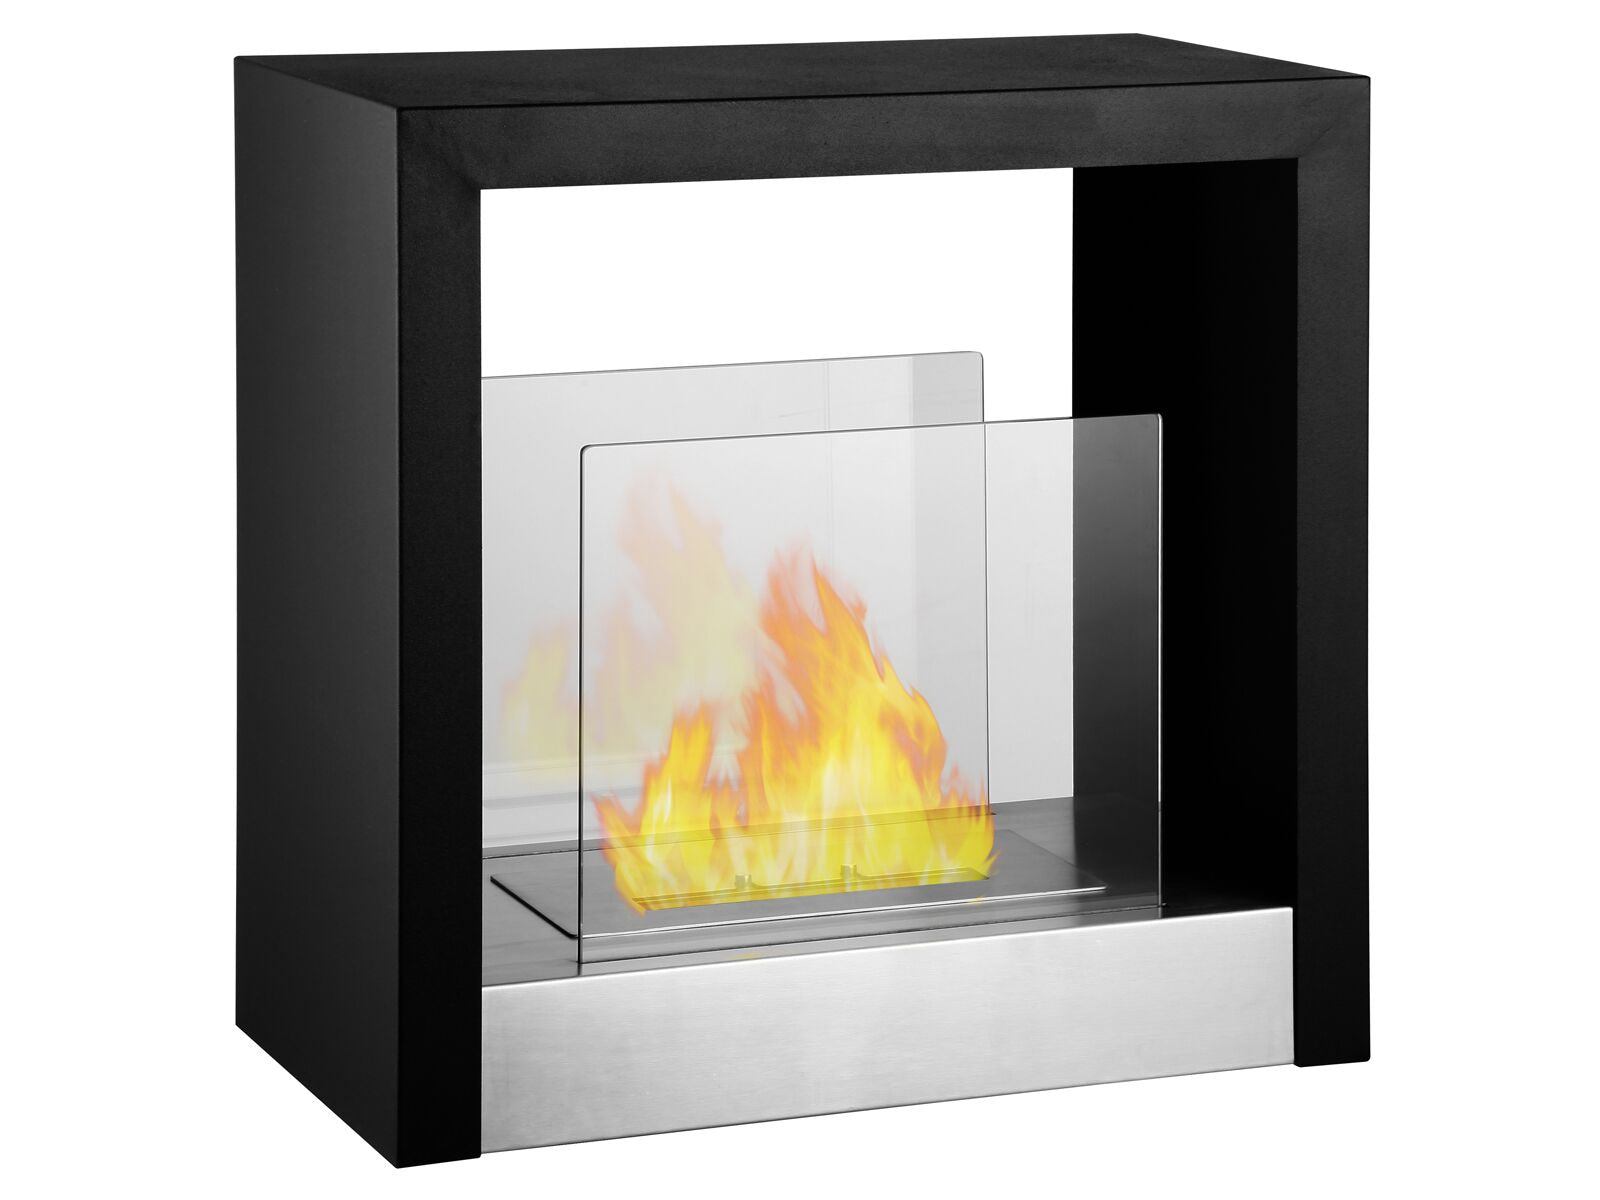 ethanol black insert products inch ignis burner fireplace